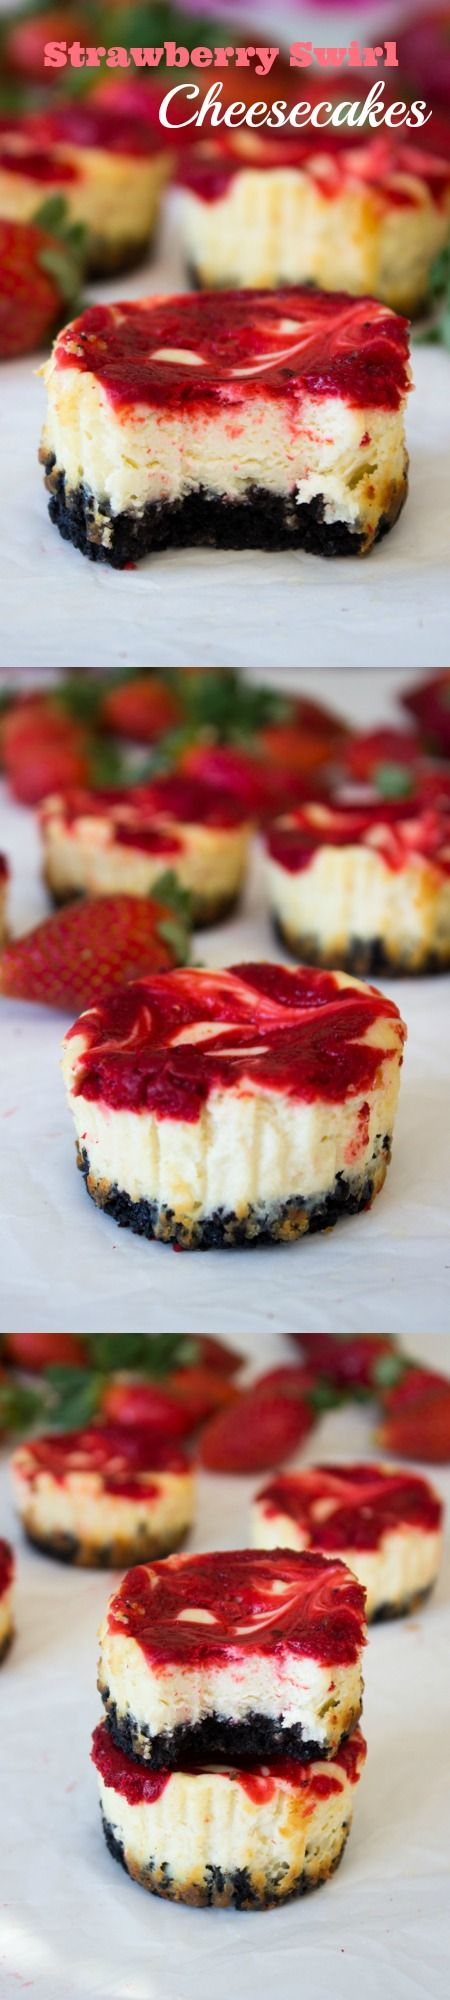 Mini Himbeer Käsekuchen Oreokeks Törtchen #cheesecake #strawberry #swirl